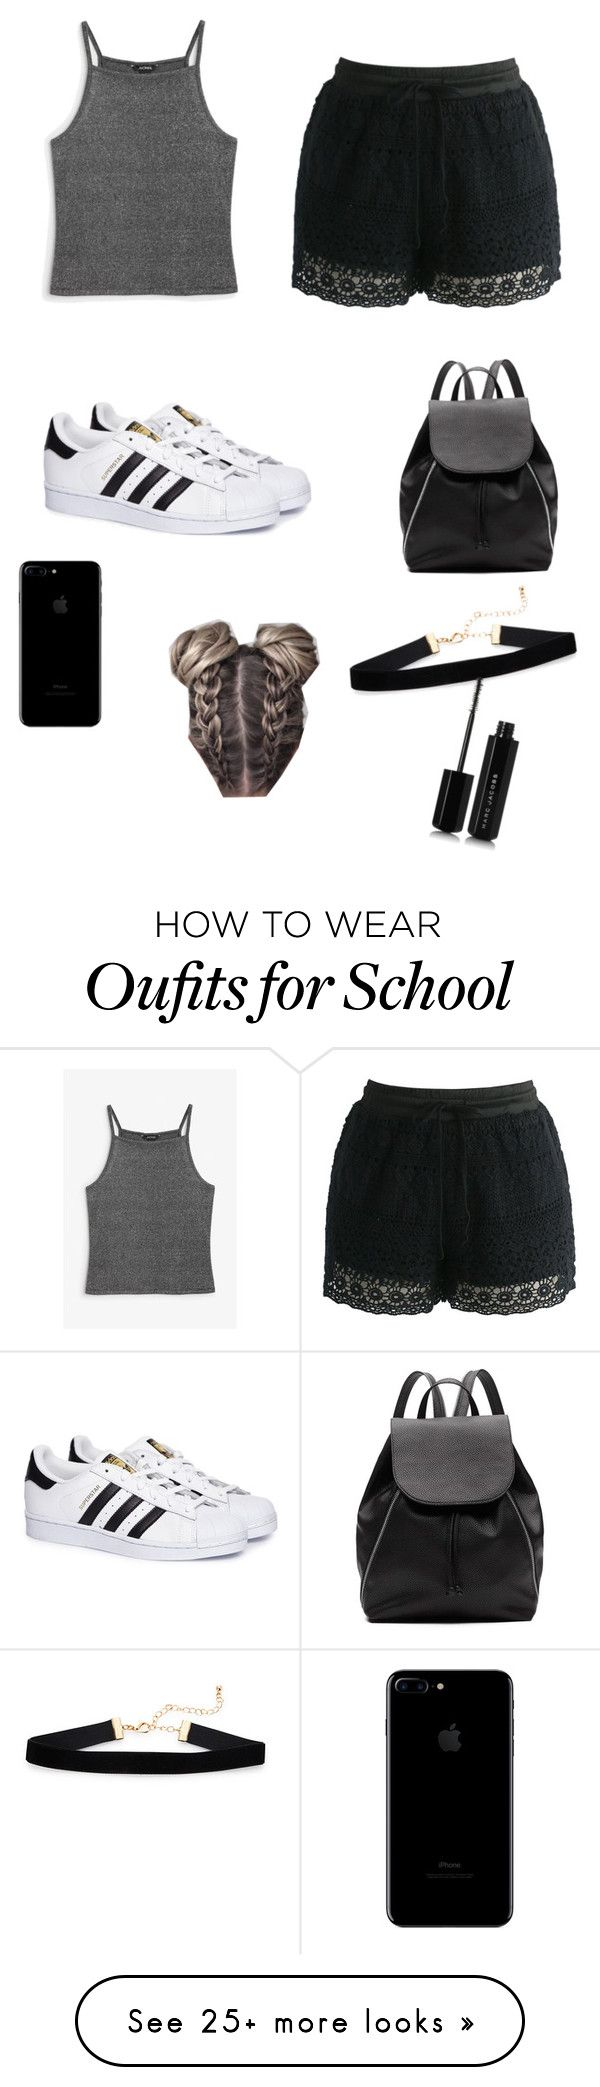 """Lazy school heat day"" by bulldogbeauty on Polyvore featuring Monki, Chicwish, adidas, Witchery and Marc Jacobs"